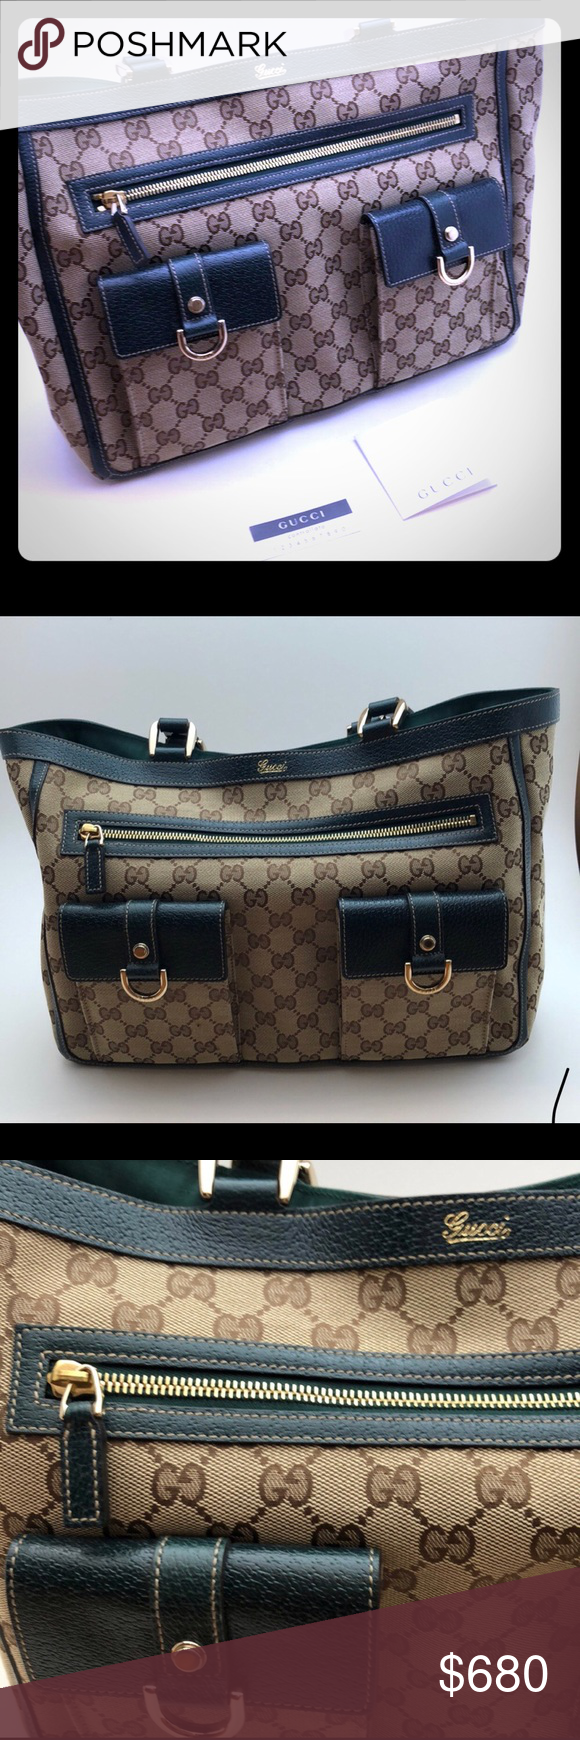 07093fd9678 GUCCI CRYSTAL ABBEY LG POCKET TOTE Neiman Marcus purchased tag  included.Perfect condition